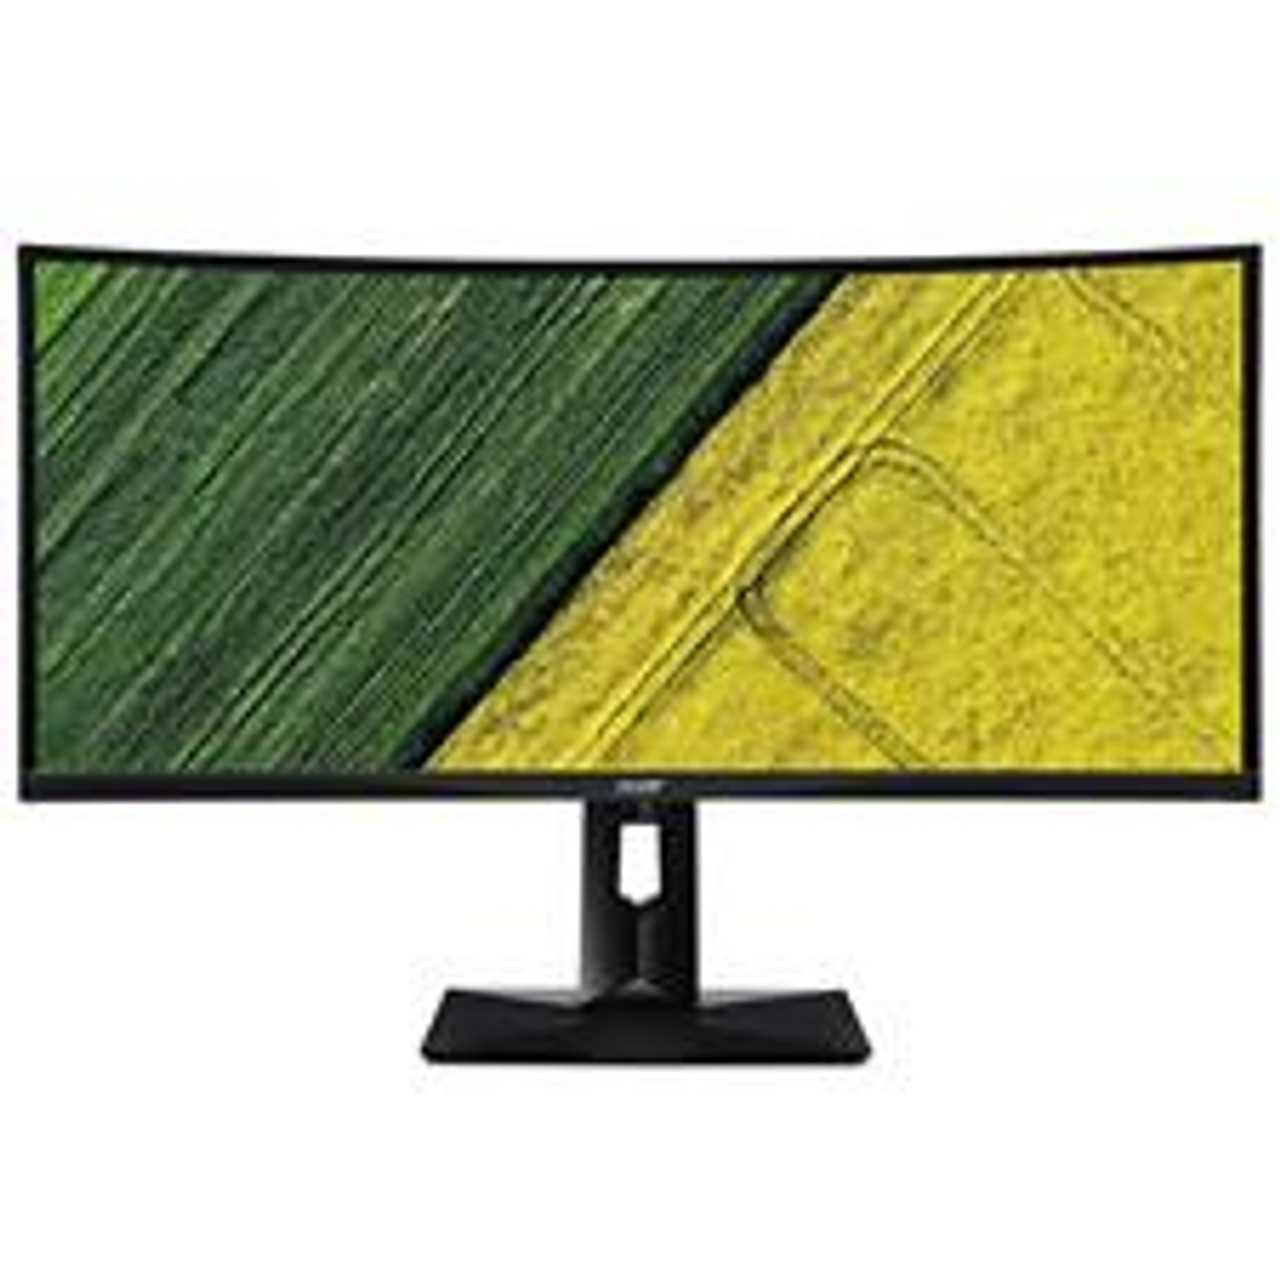 Acer CZ340CKB 34in 100Hz UWQHD Curved Adaptive Sync IPS Gaming Monitor